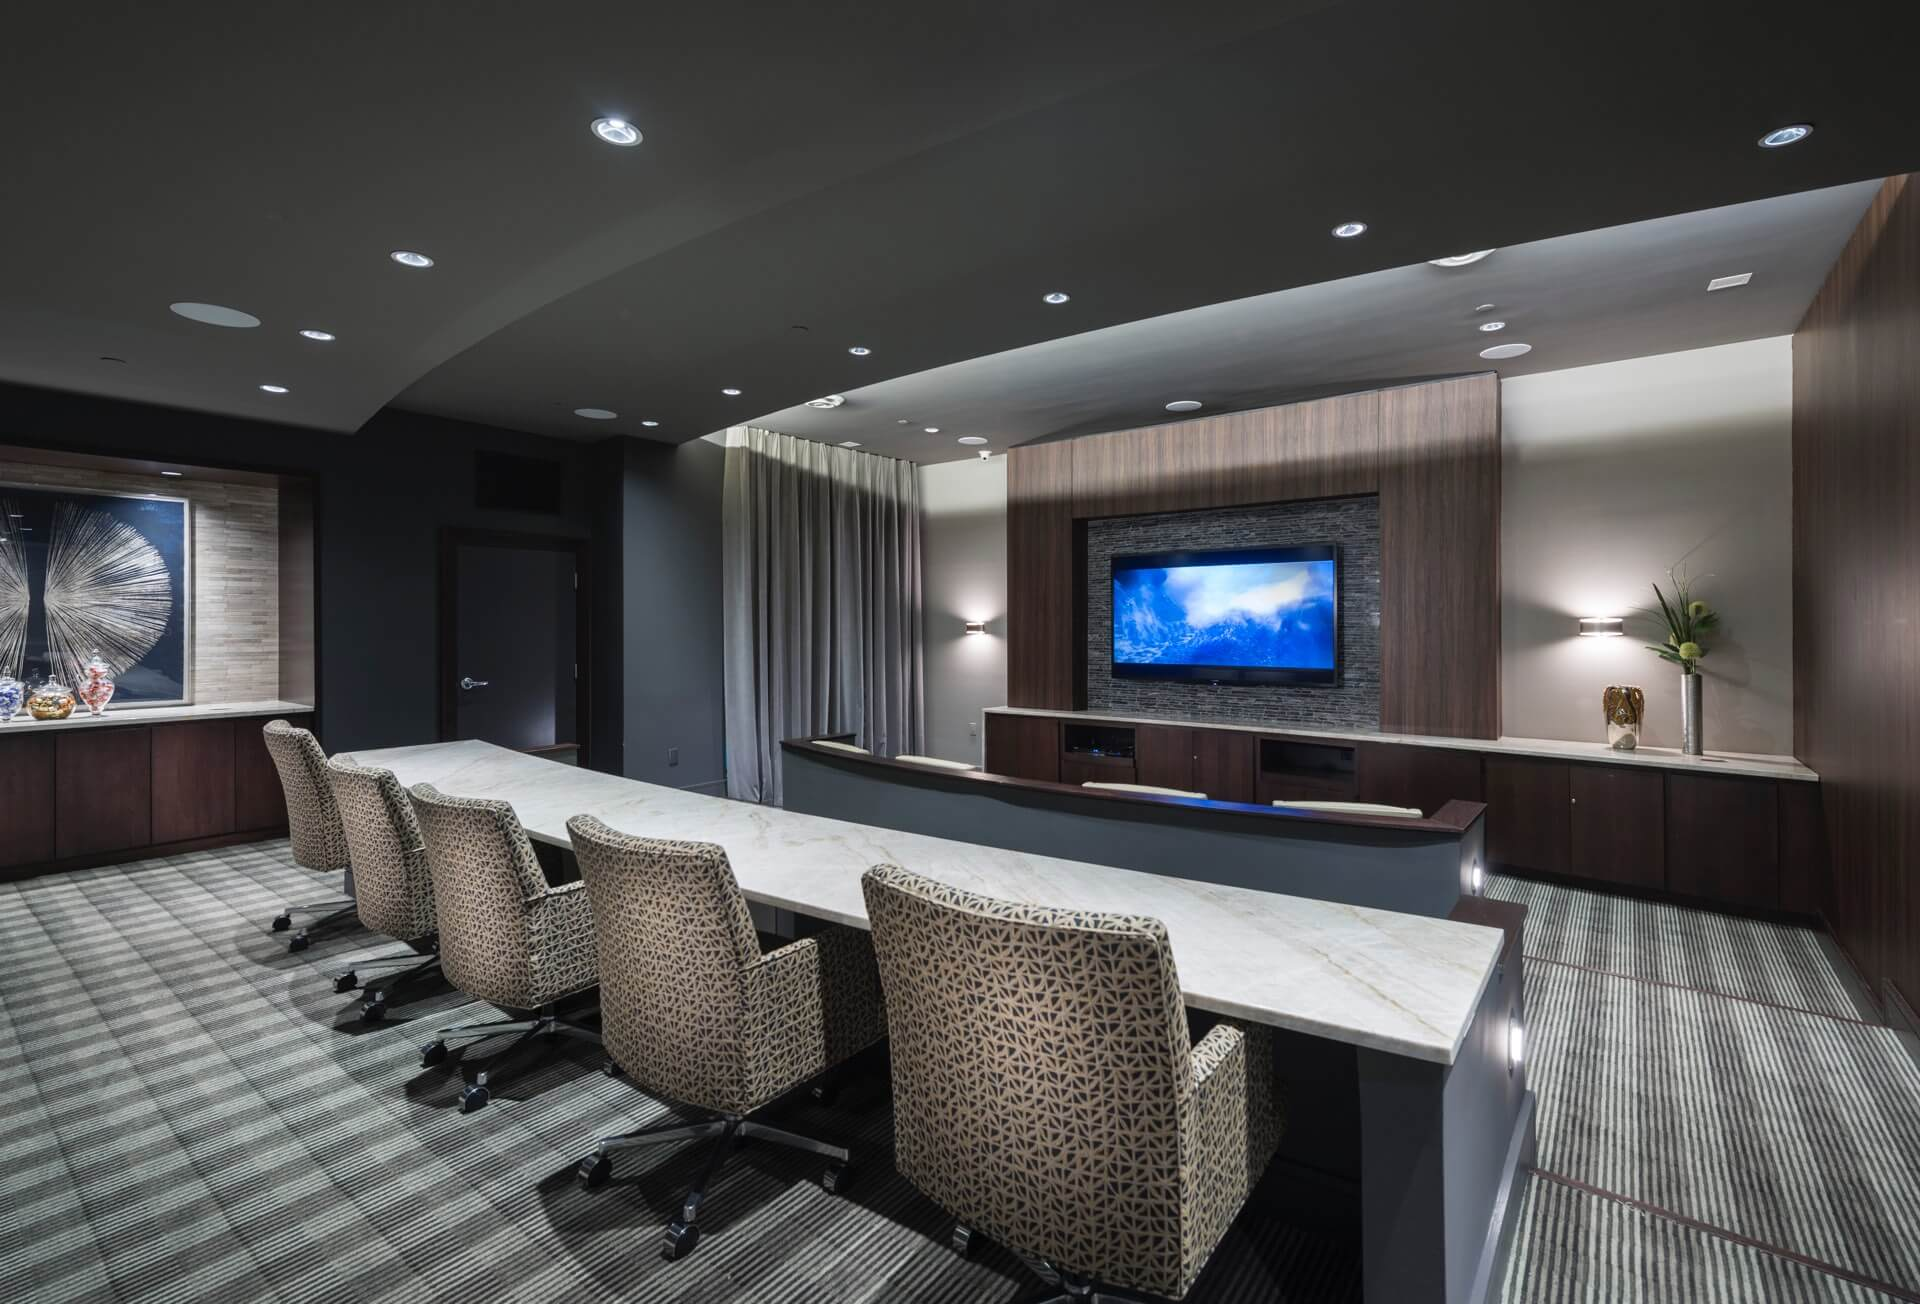 Catch a game or watch a movie in our private media room